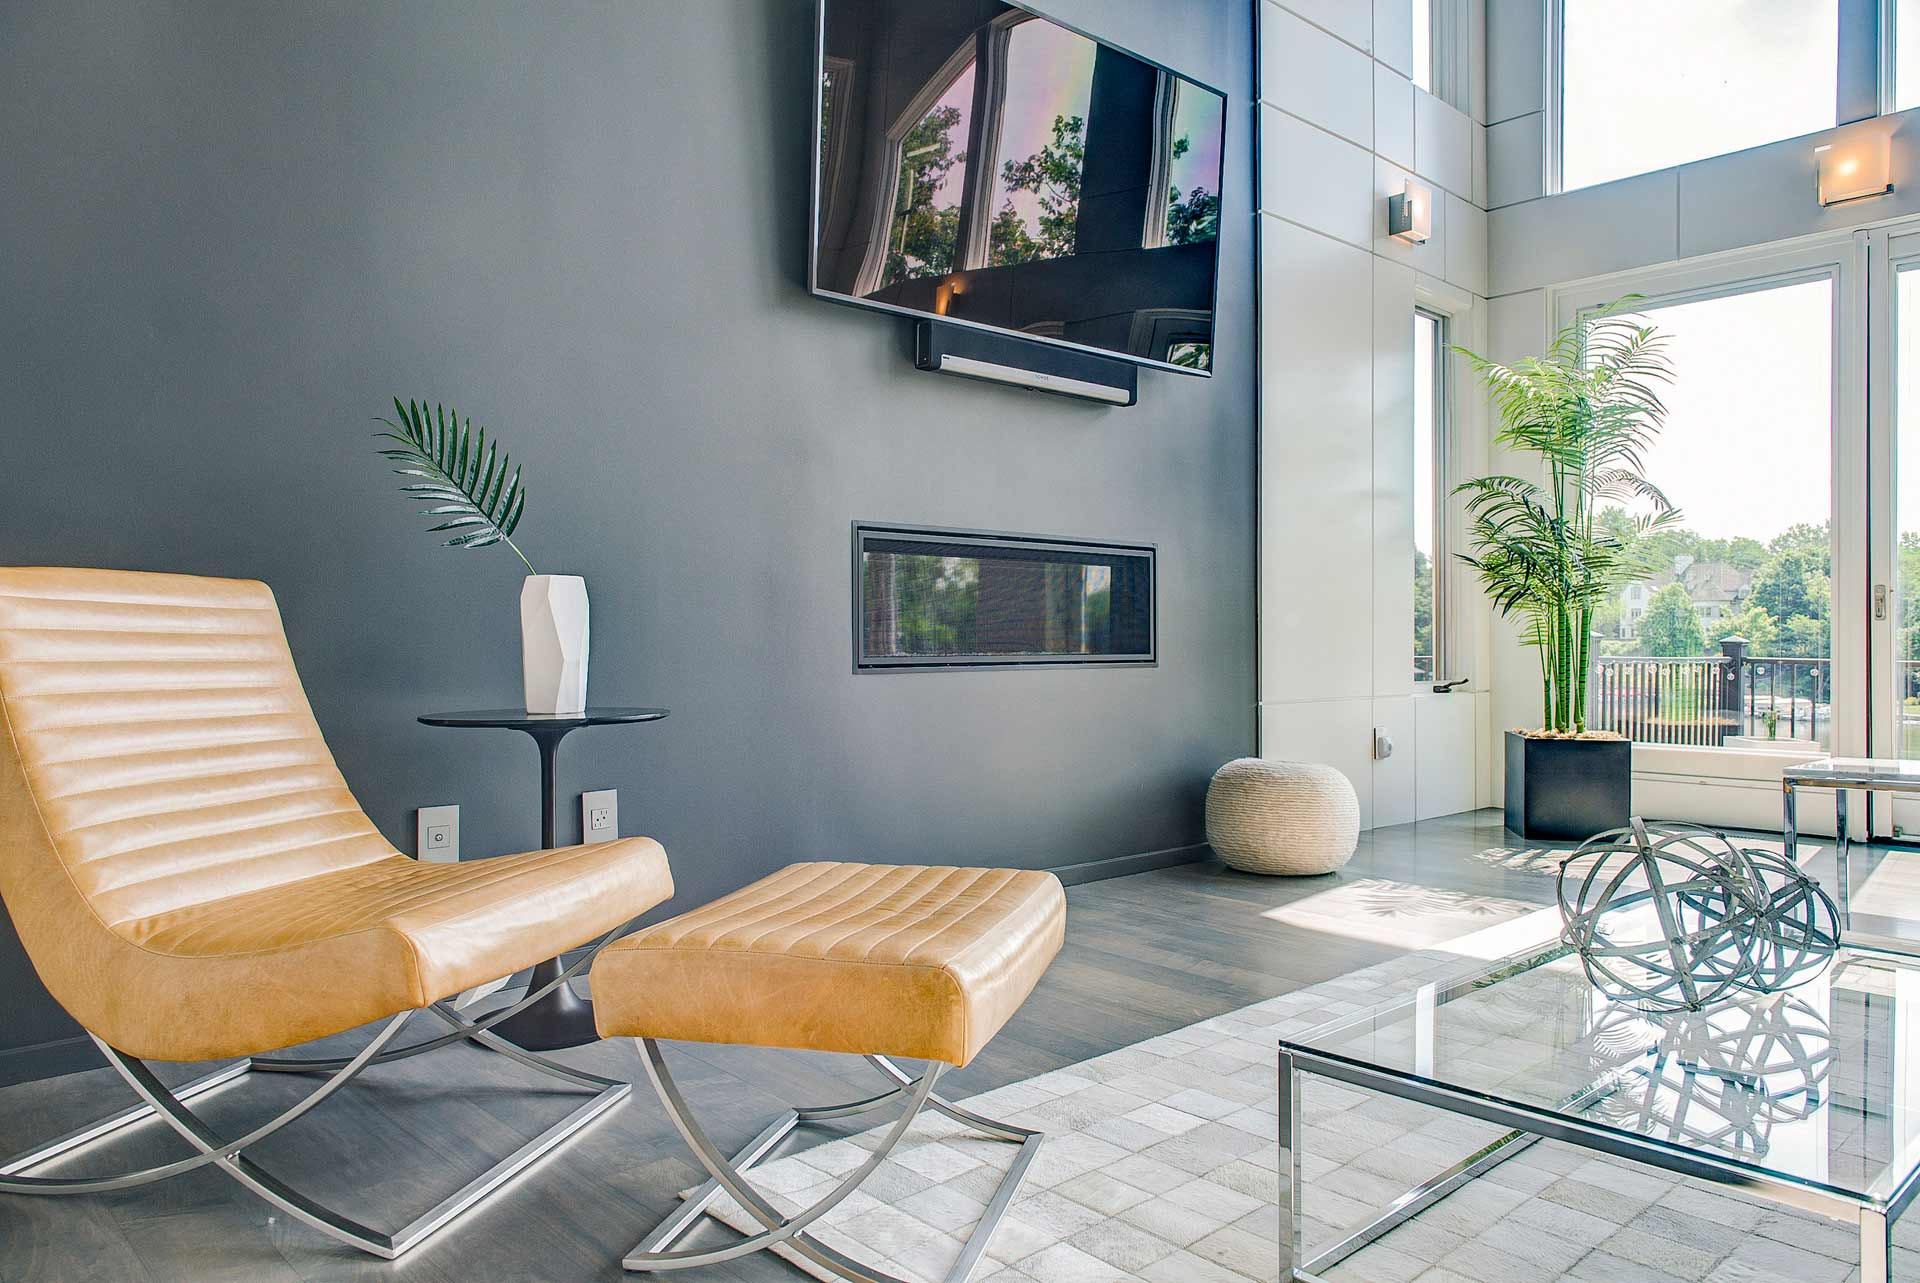 Vaulted living space overlooks Geist Reservoir - new updates include panelized walls - Reef Court Light Renovation - Geist Reservoir - Indianapolis, IN - modern yellow leather chair - Photo by Structured Photography